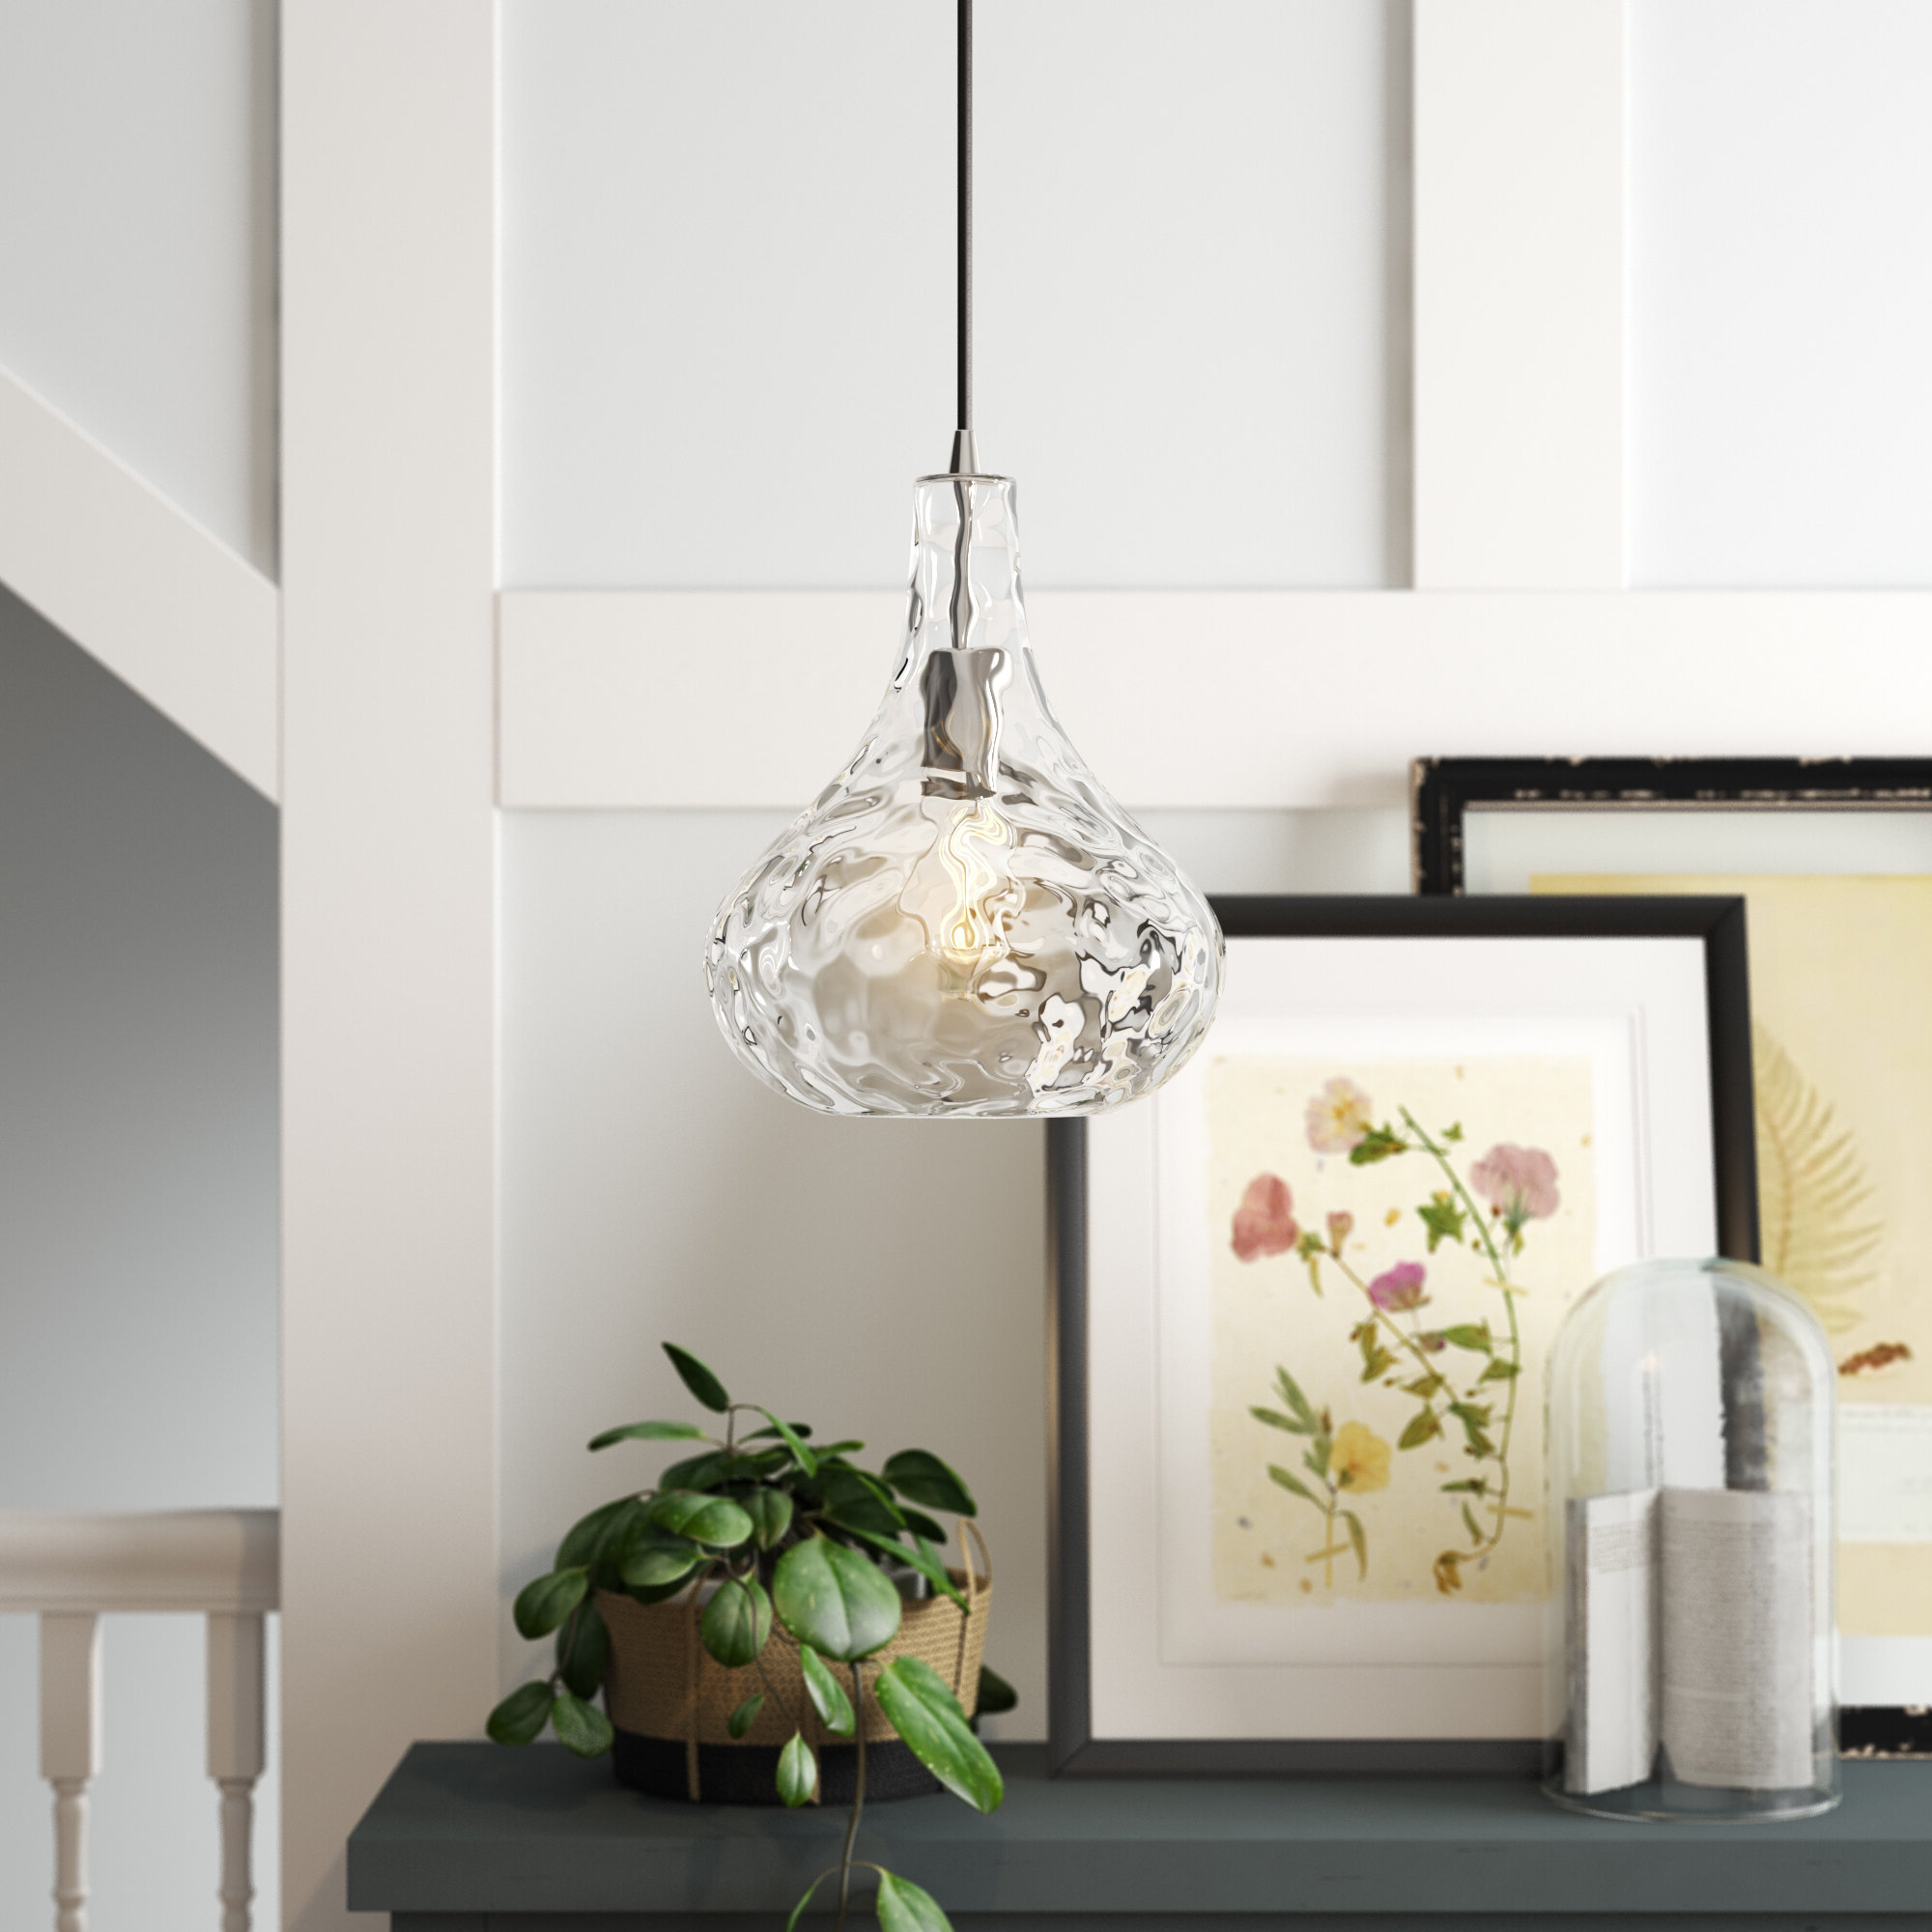 Sussex 1 Light Single Geometric Pendants With Regard To Most Popular 1 Light Single Teardrop Pendant (View 11 of 20)